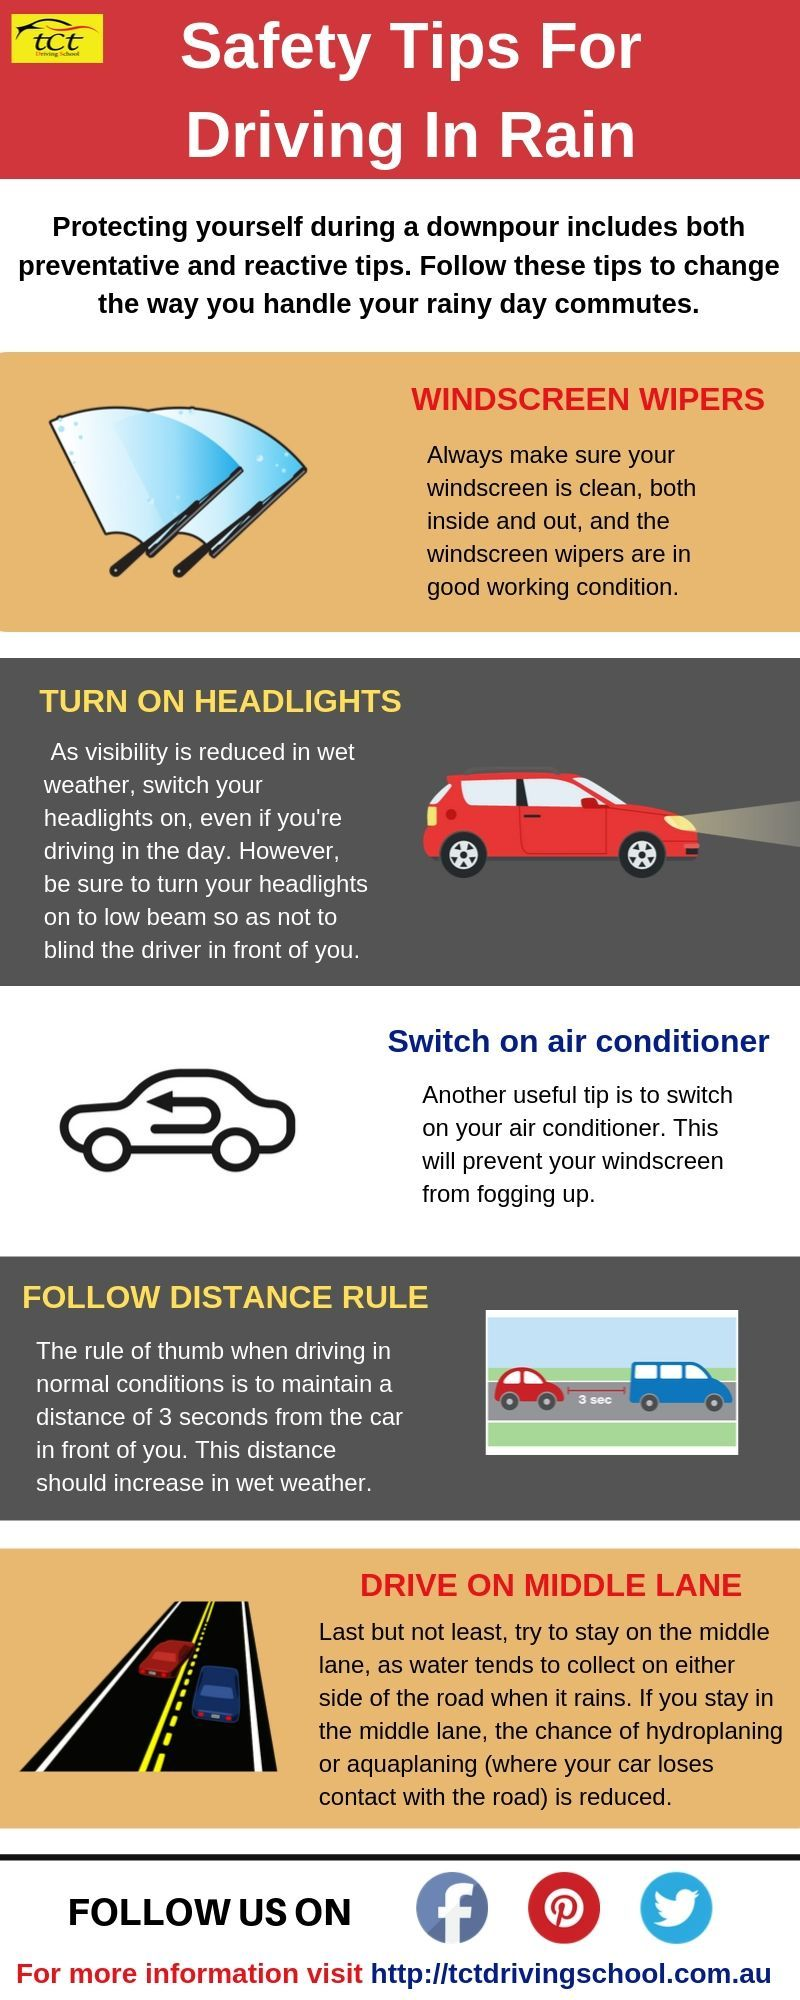 Safety Tips For Driving In The Rain.